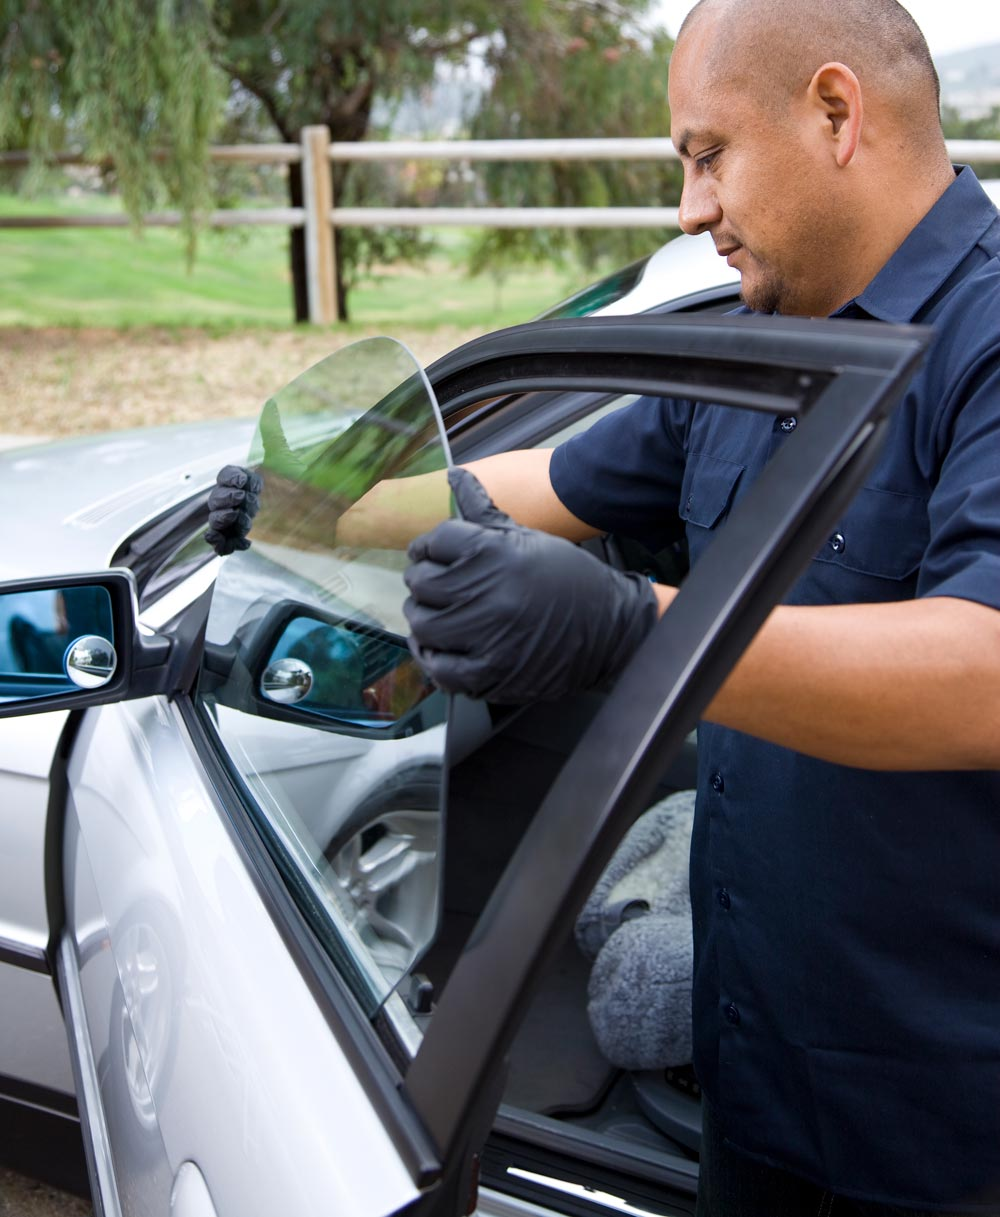 Glass replacement at Beam Auto Glass